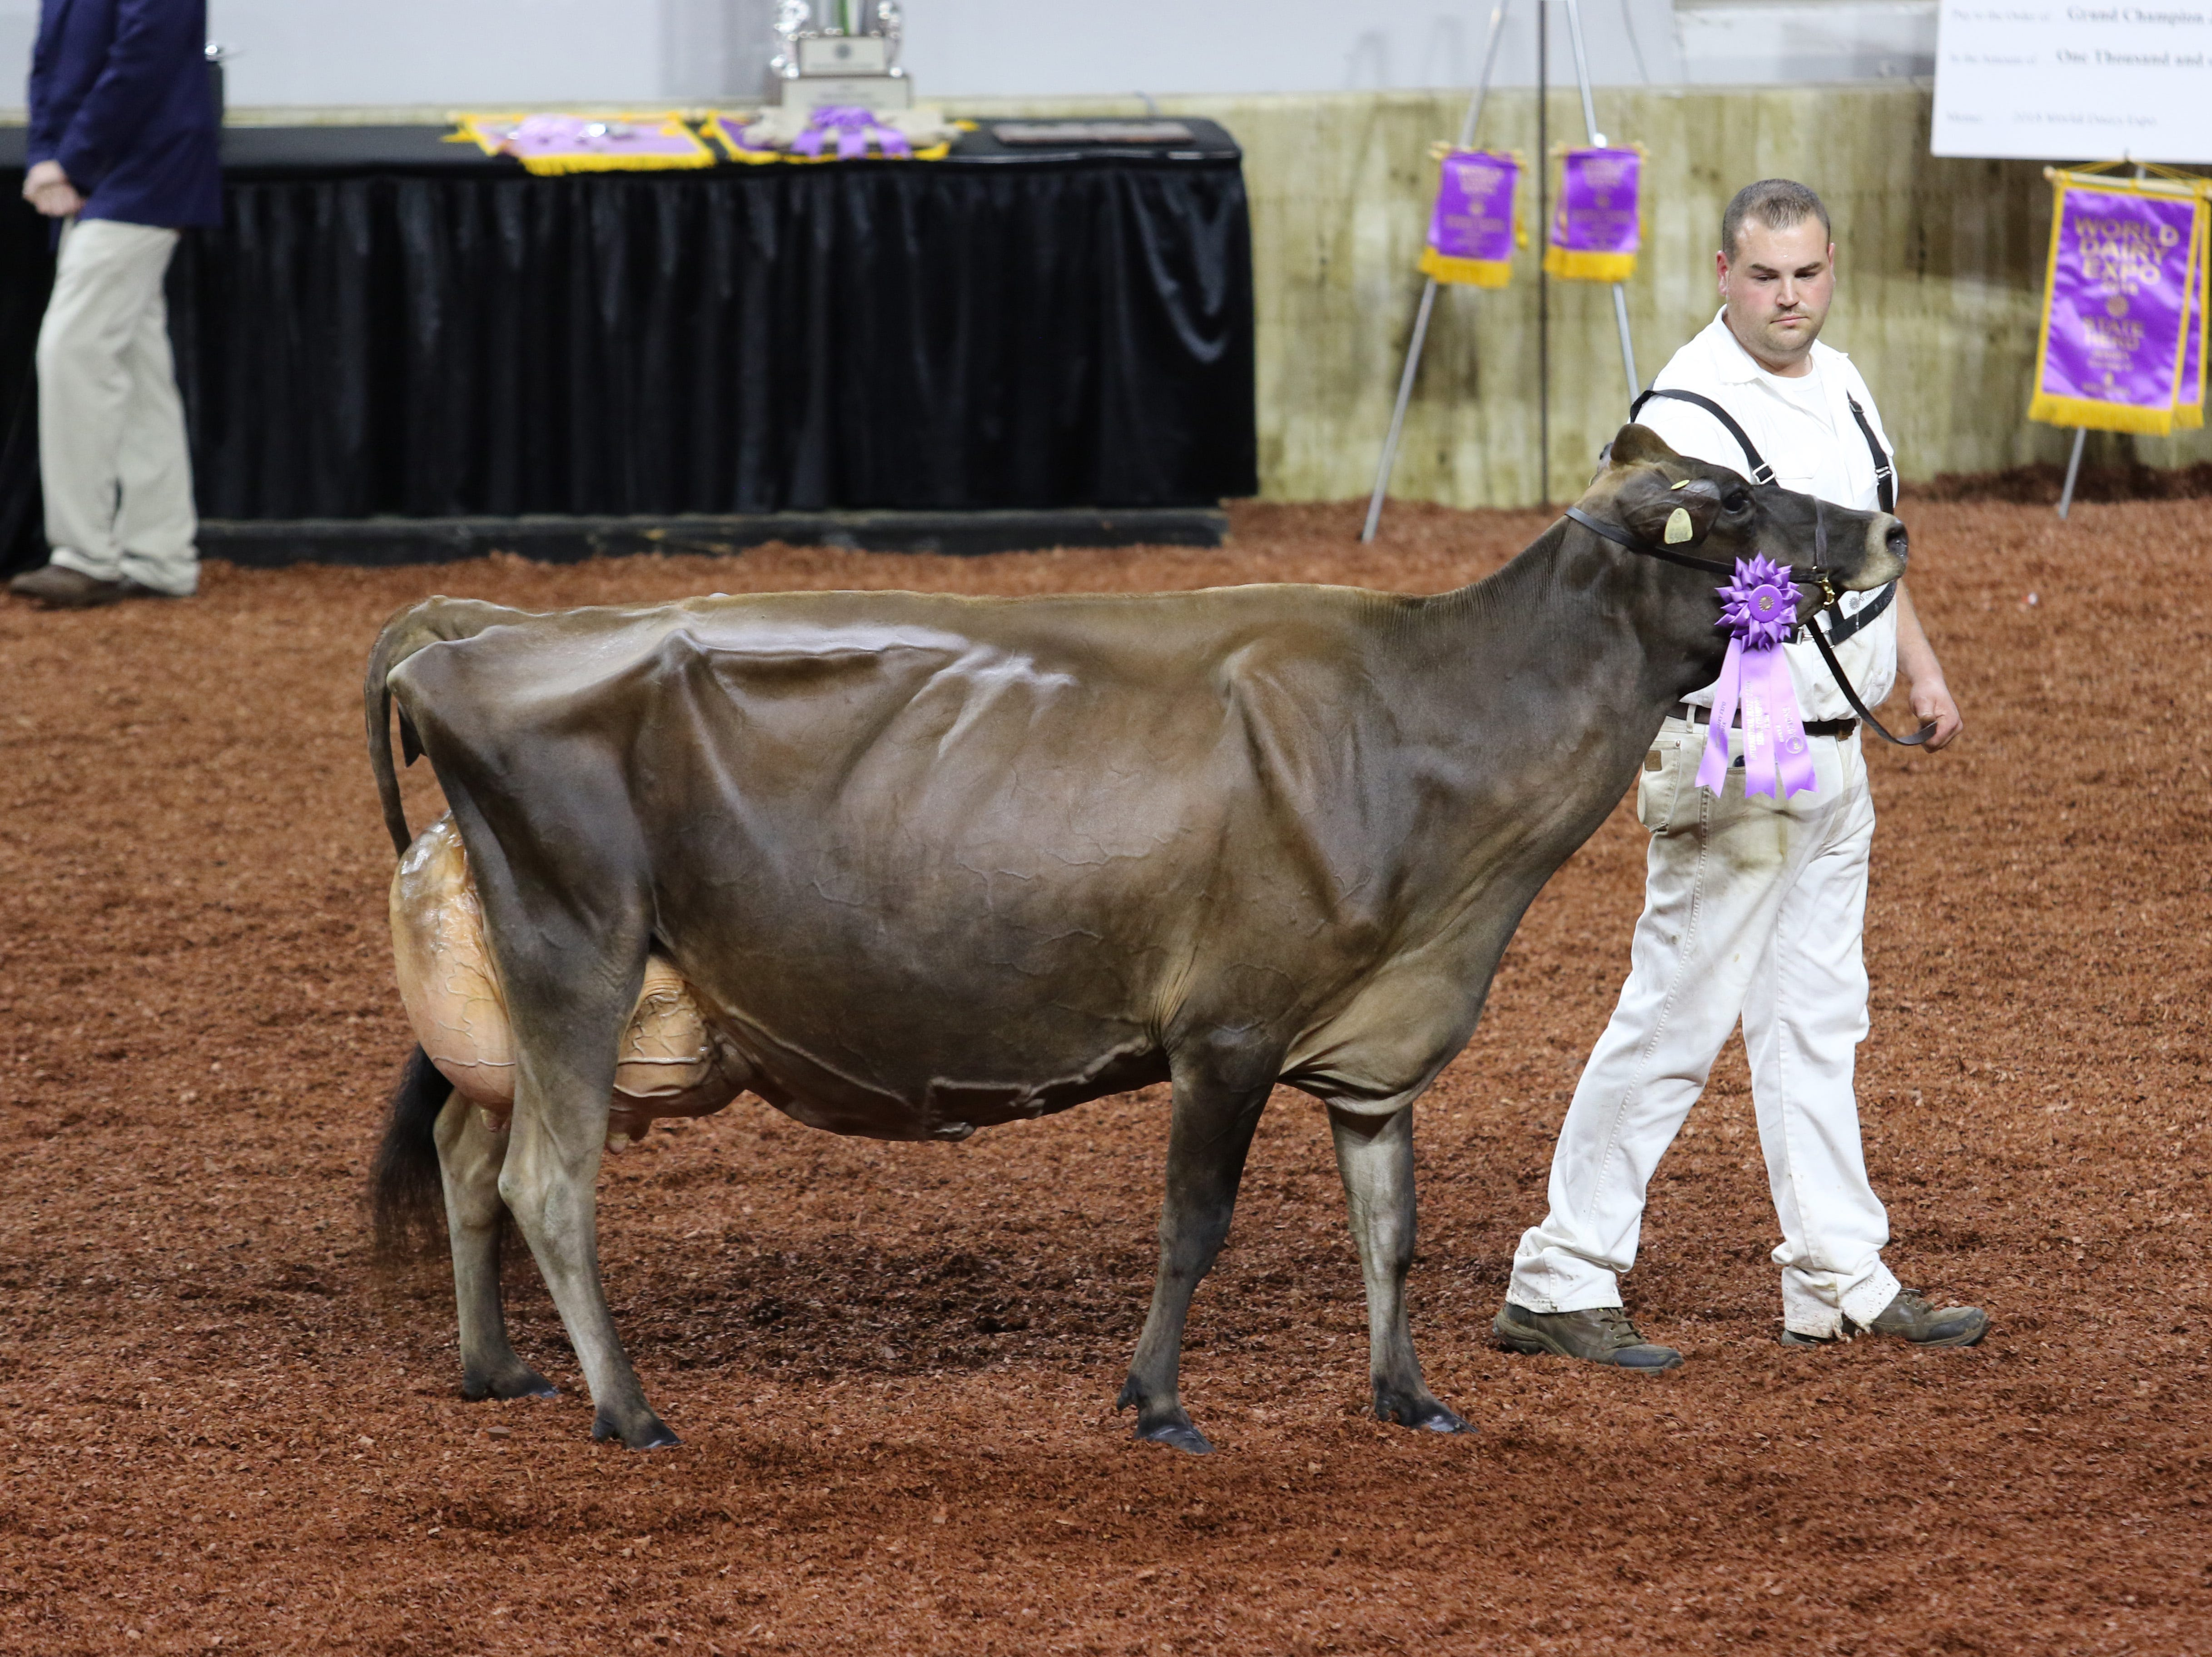 MB Lucky Lady Feliz Navidad-ET took home three titles at the 2018 International Jersey Show: the winning Four-Year-Old Cow, Senior Champion Female and Grand Champion Female.